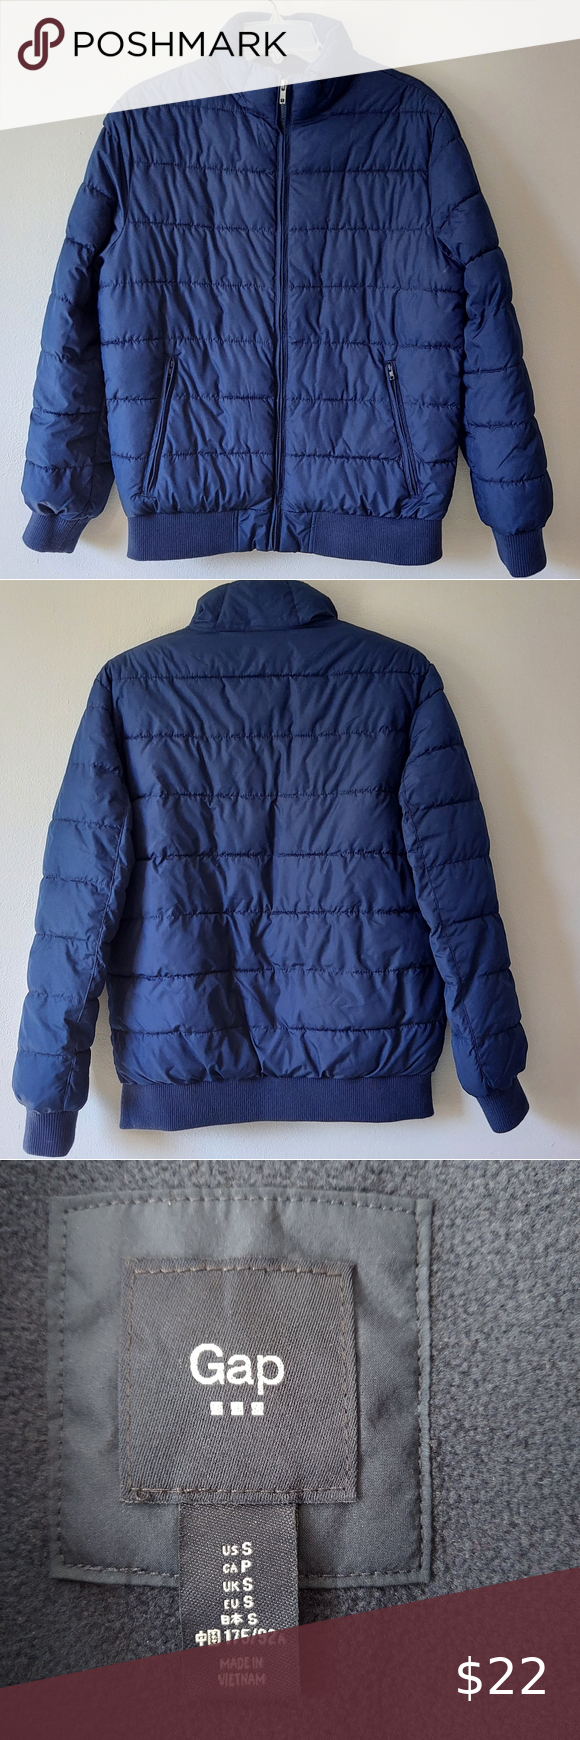 Gap Navy Blue Puffer Jacket Navy Blue Puffer Coat With An Elastic Waist Bomber Style Two Front Pockets Fleece Line Blue Puffer Jacket Jackets Puffer Jackets [ 1740 x 580 Pixel ]